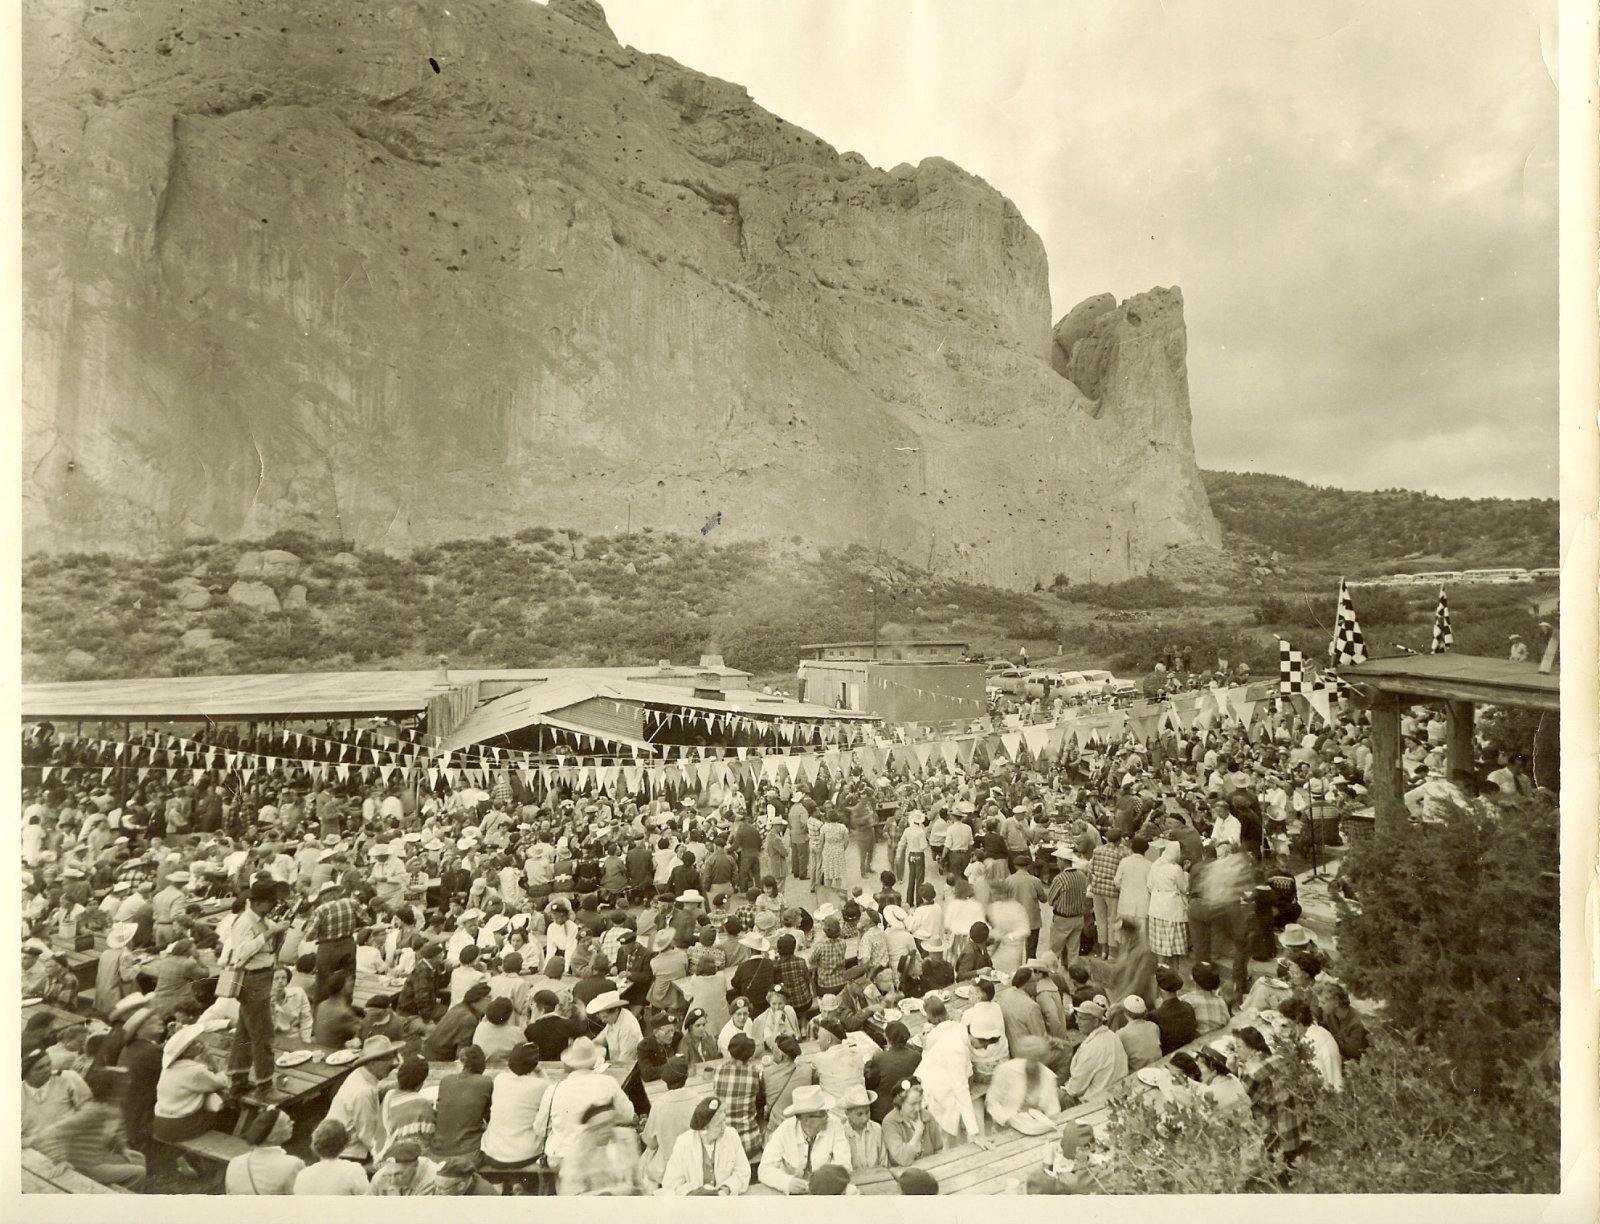 Click image for larger version  Name:Garden of Gods 1960.jpg Views:135 Size:405.2 KB ID:115467